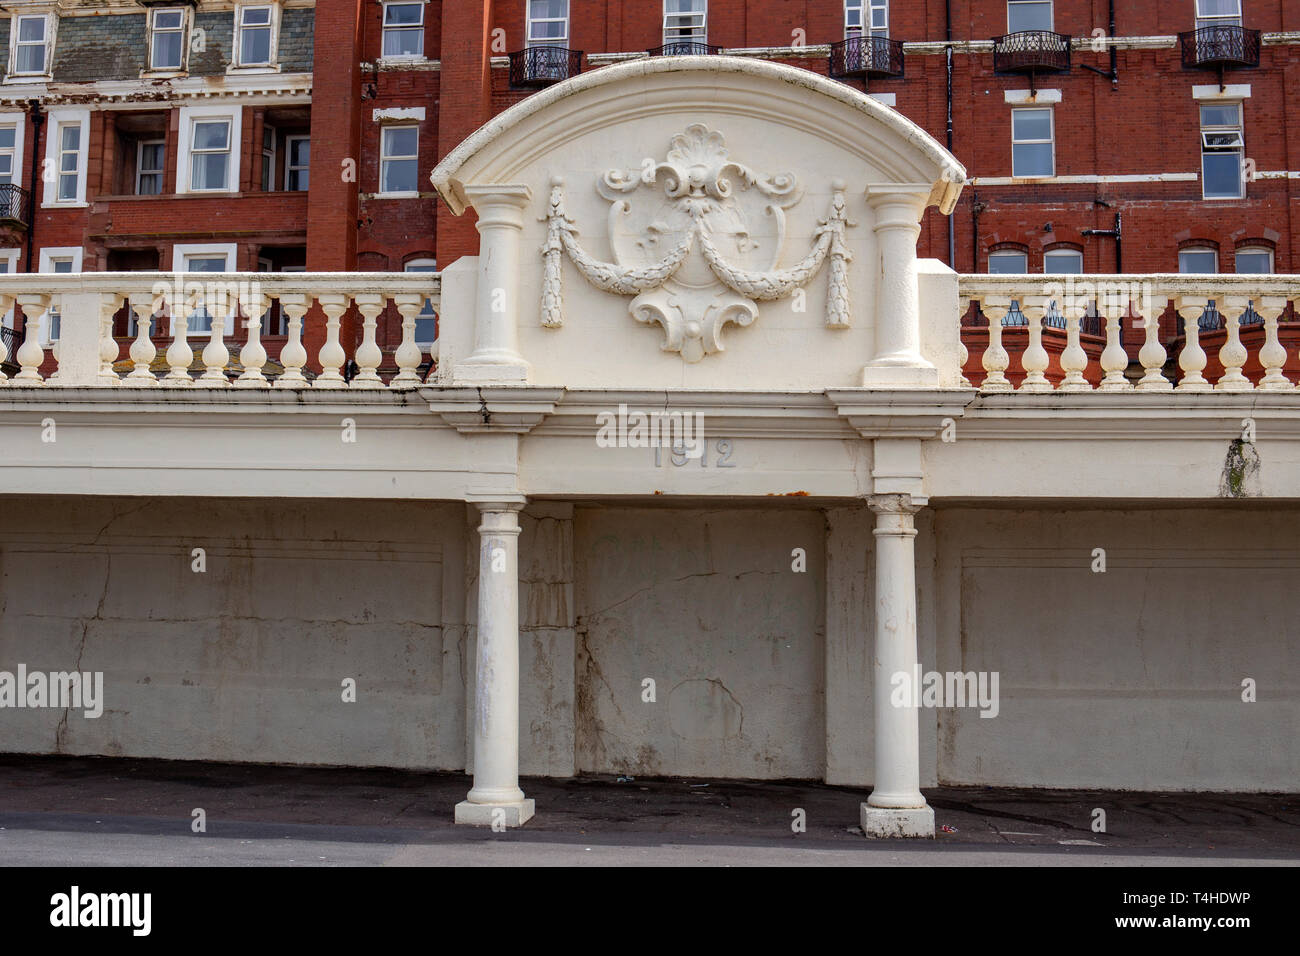 Seaside shelter under Metropole Hotel parking lot with removed seats dated 1912 in Blackpool Lancashire UK - Stock Image